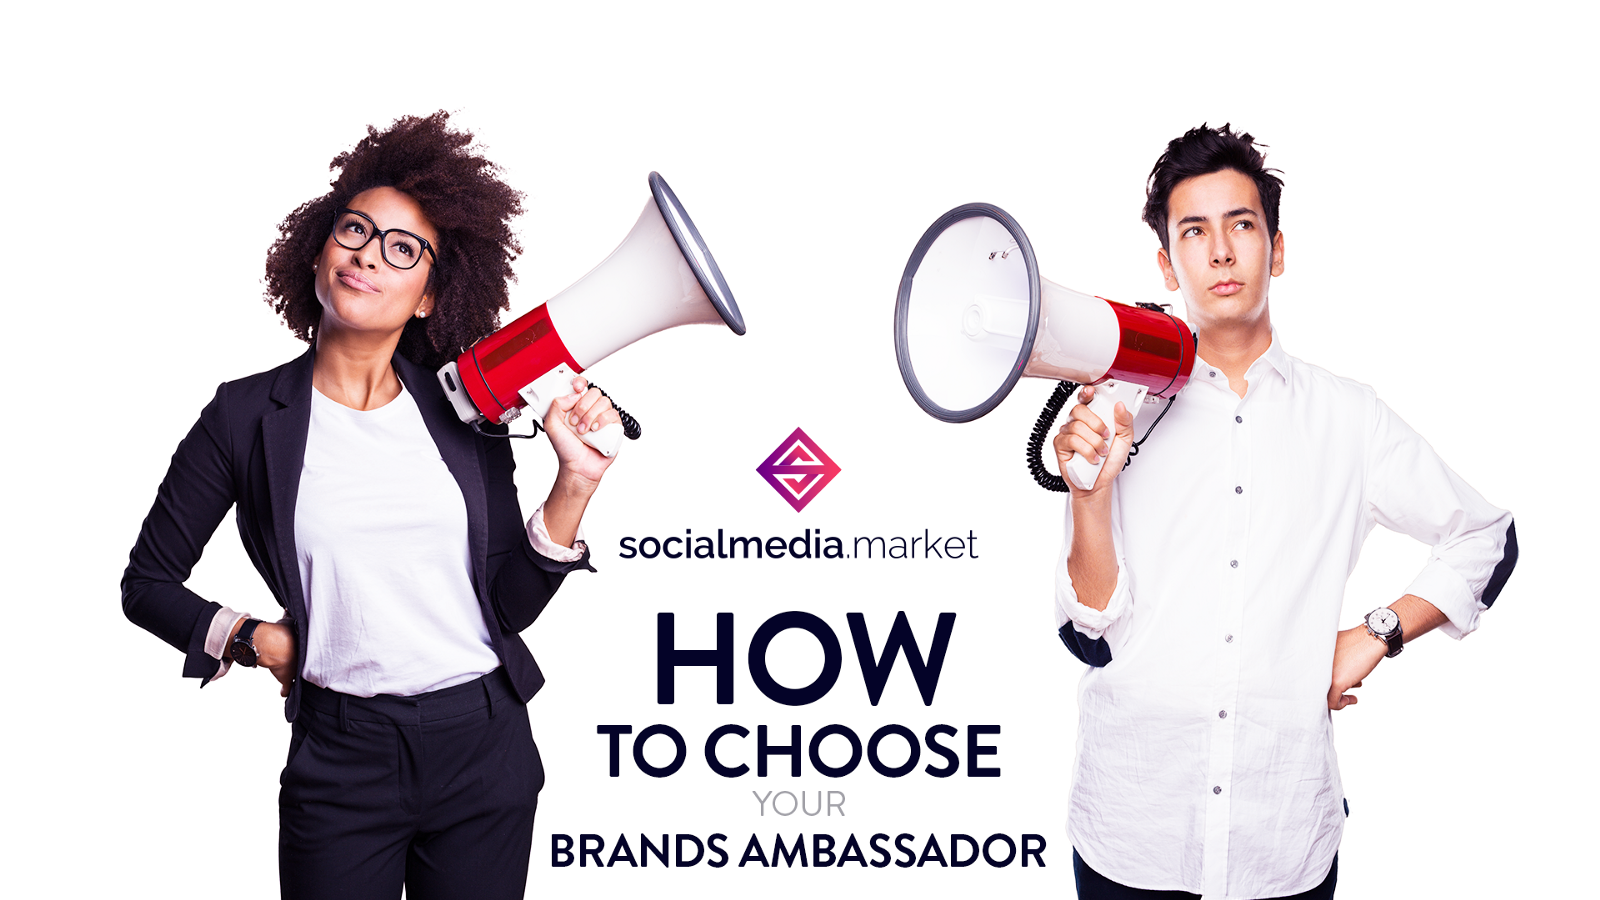 b58e3c0748f A brand ambassador is a personality with a certain amount of audience who  promotes a brand and its products to their network with the goal of  boosting brand ...